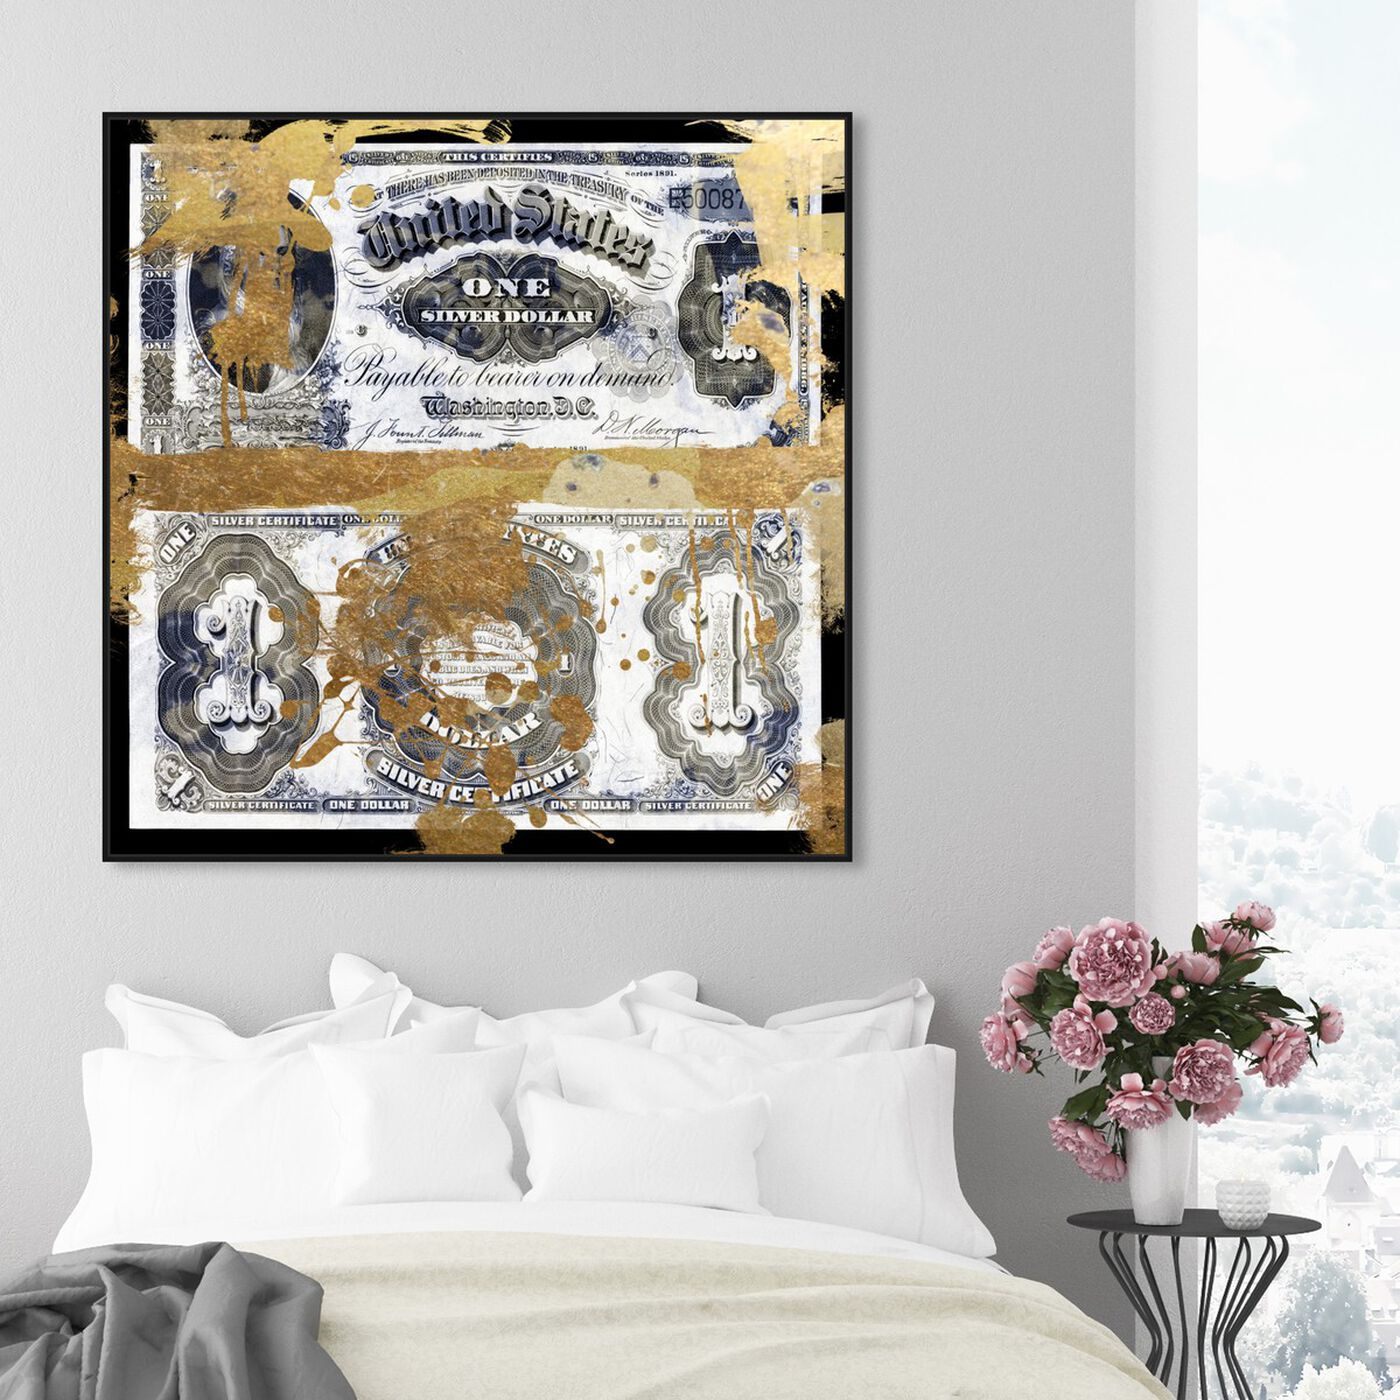 Hanging view of Silver Dollar featuring success and entrepreneurial and money art.